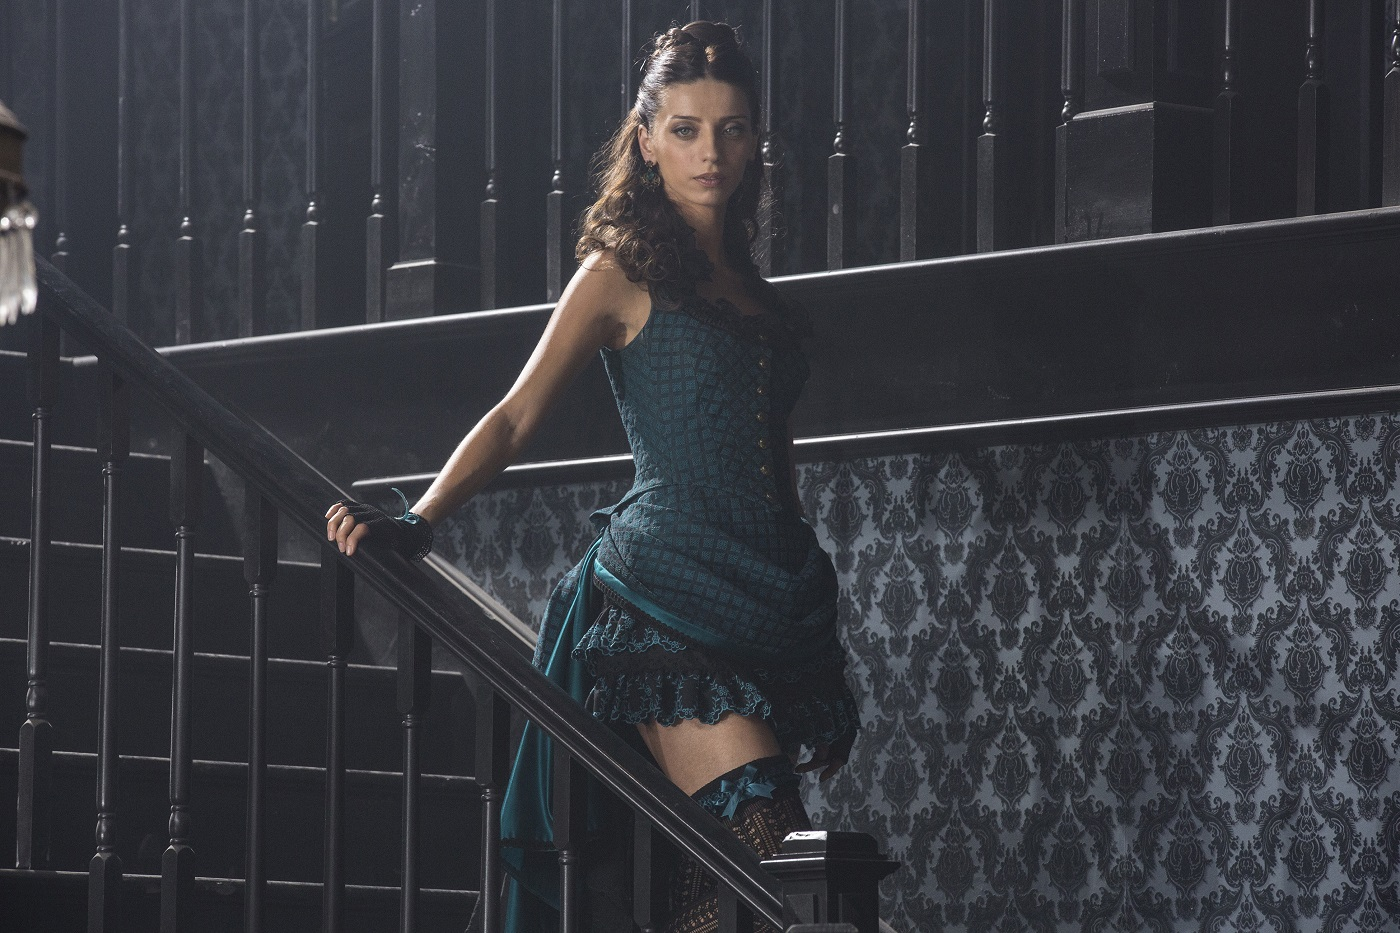 Angela Sarafyan as Clementine Pennyfeather on Westworld